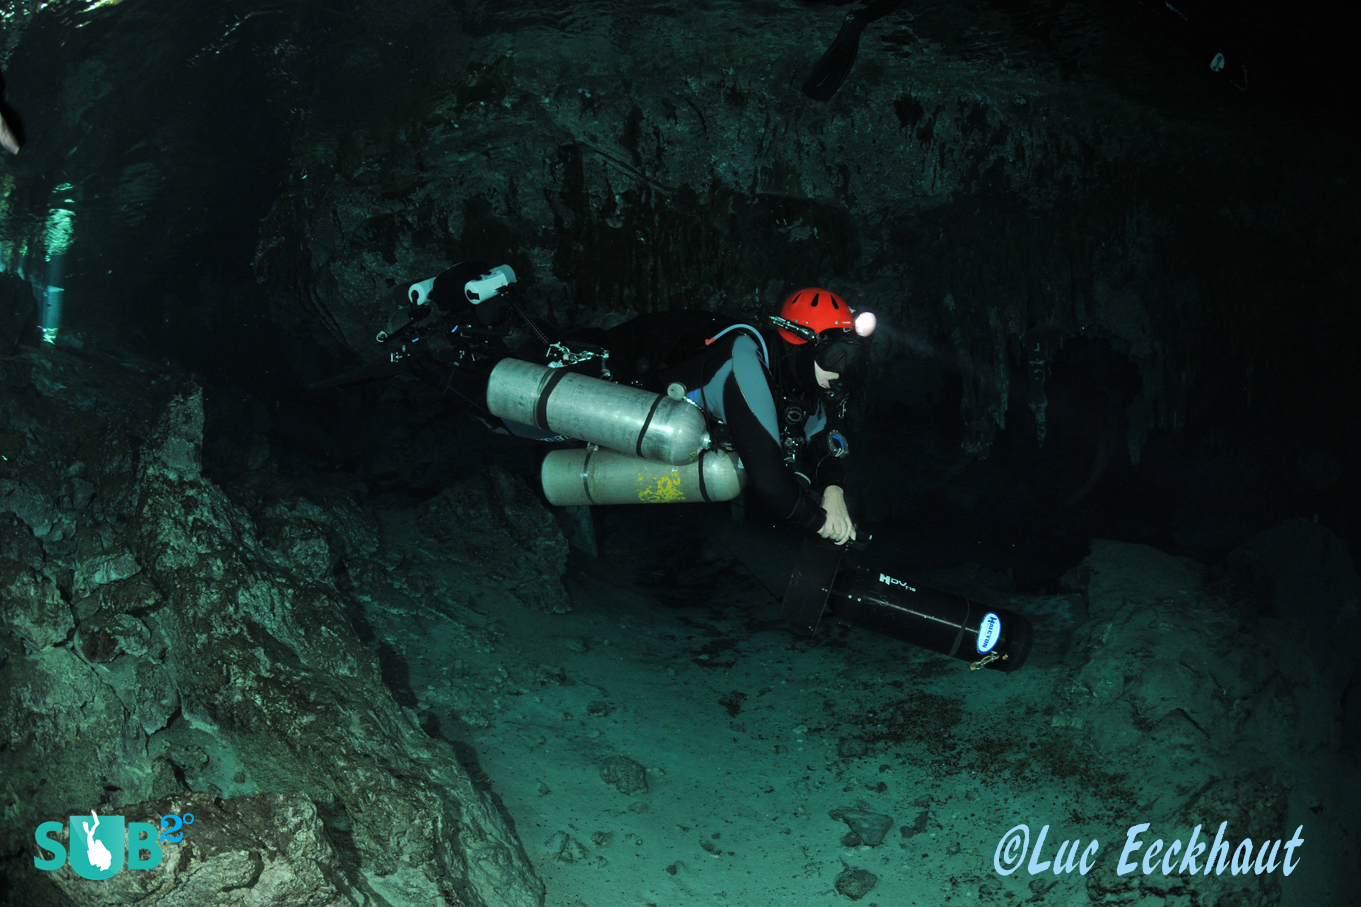 Technical diving is becoming more common; allowing trained divers to experience deep reefs, wrecks, and cave systems.